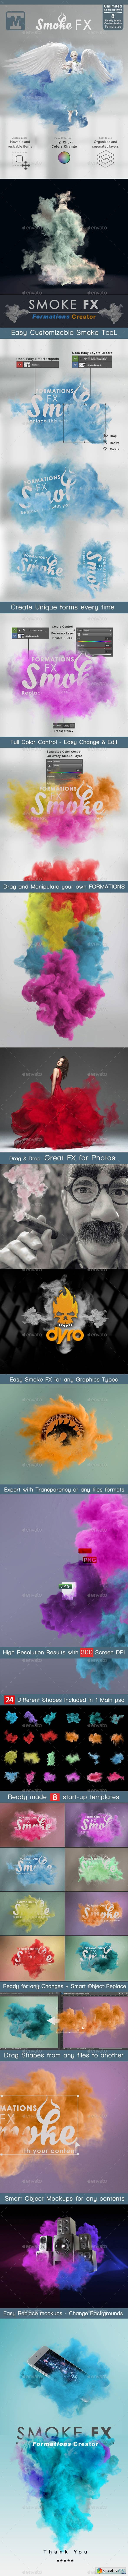 Graphicriver Smoke FX Formations Creator & Mockups